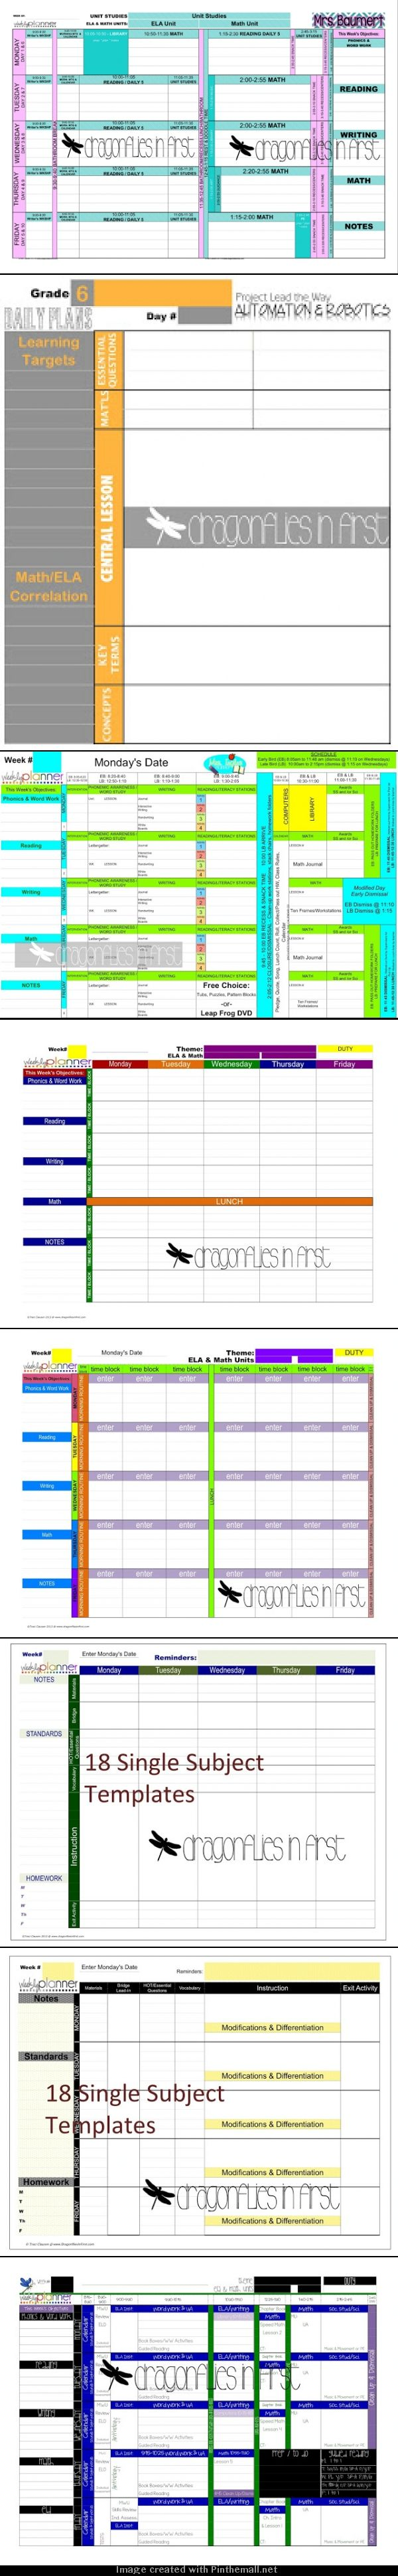 GET ORGANIZED for the new year! Digital Teacher PLAN BOOK! Keep an entire year's worth of plans in ONE FILE. Includes 88 customizable planner templates, K-12 CCSS standards, 8 editable covers and auto-filling recording sheets. HS and middle school single-subject lesson plan templates and traditional planner styles. LIFETIME REUSABLE PLANNER! NO YEARLY FEE! FULLY CUSTOMIZABLE! This is a DEFINITE teacher MUST HAVE!!! Available for both PC and MAC